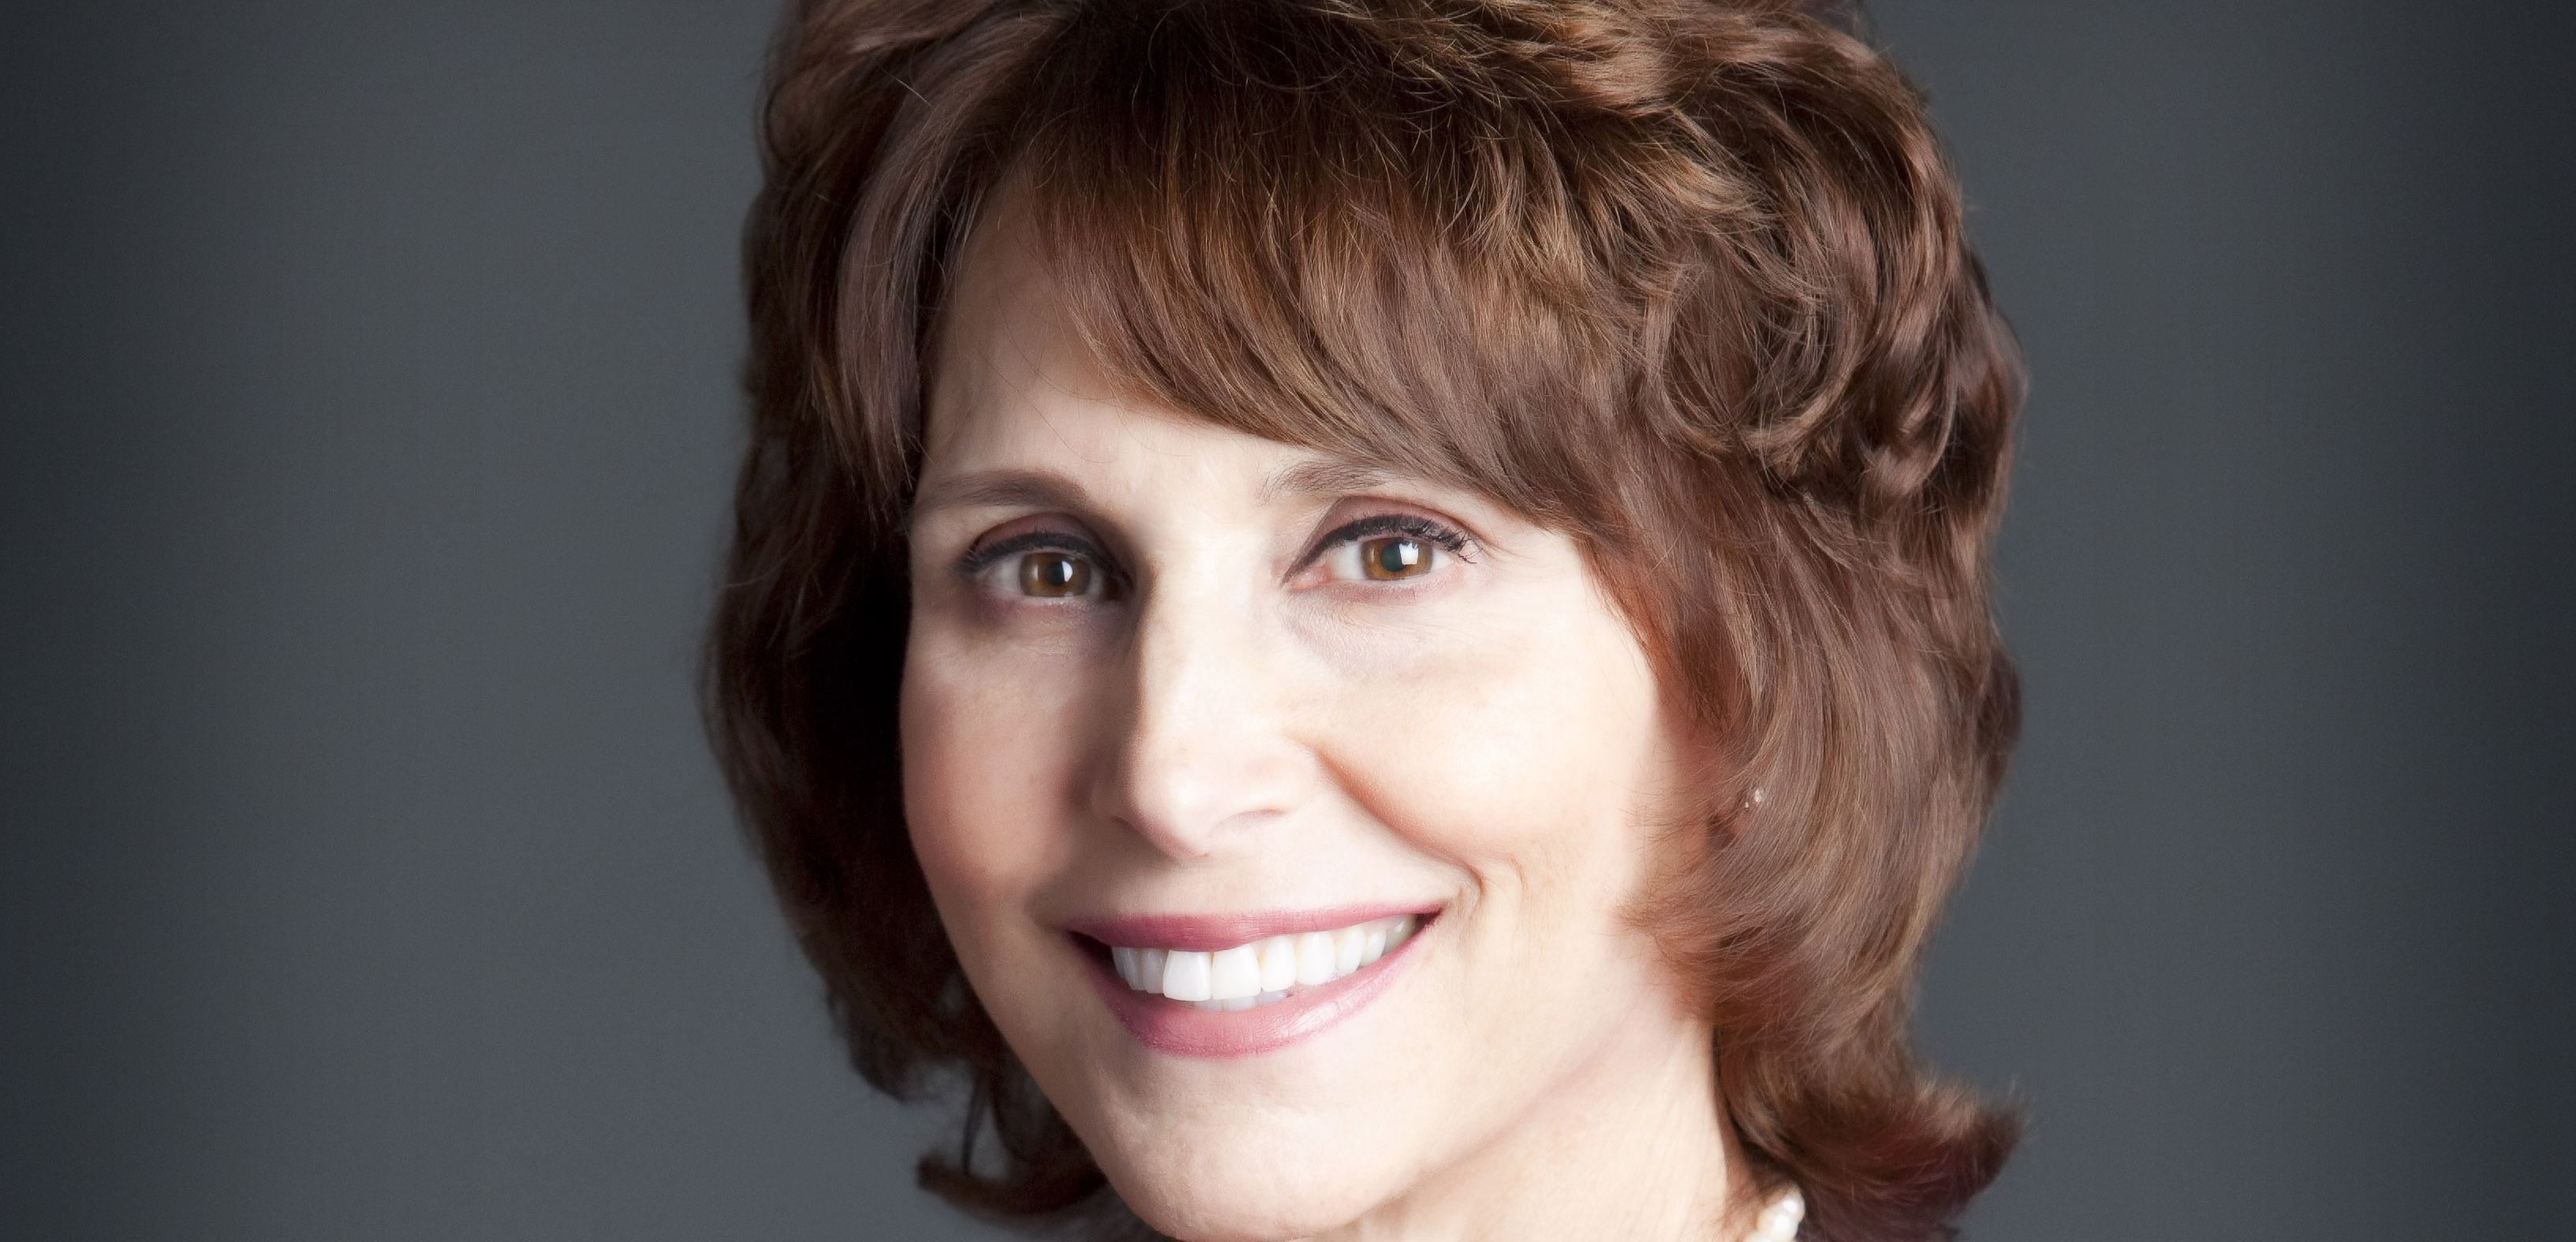 Breast Cancer Researcher Dr. Nancy Cappello Visits San Jose Woman's Club